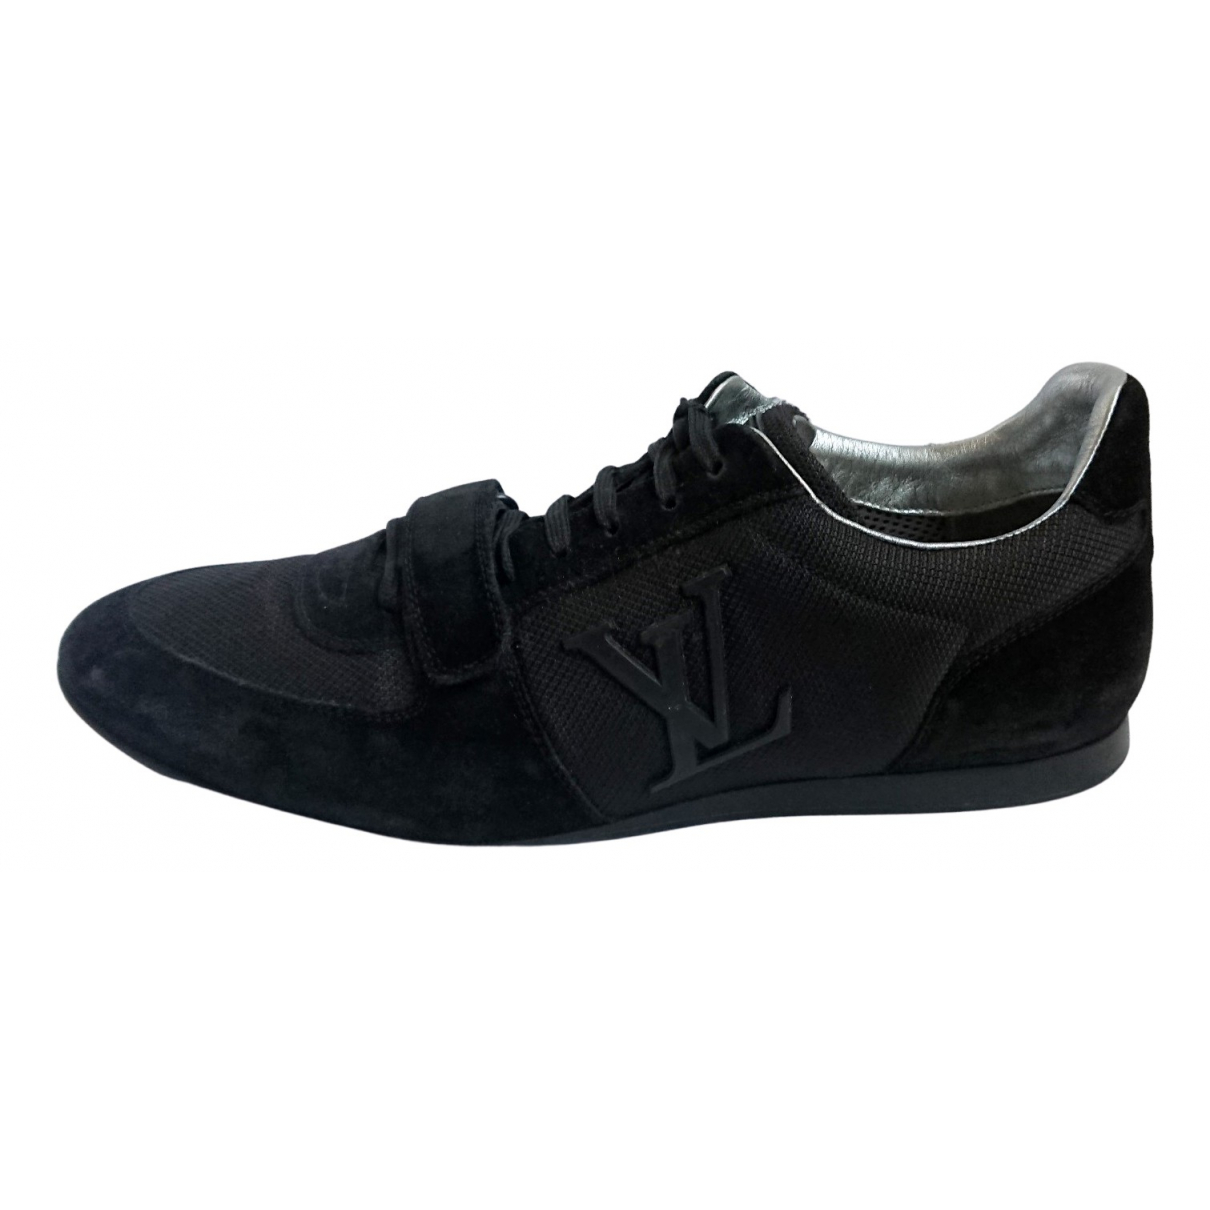 Louis Vuitton N Black Suede Trainers for Men 8.5 UK